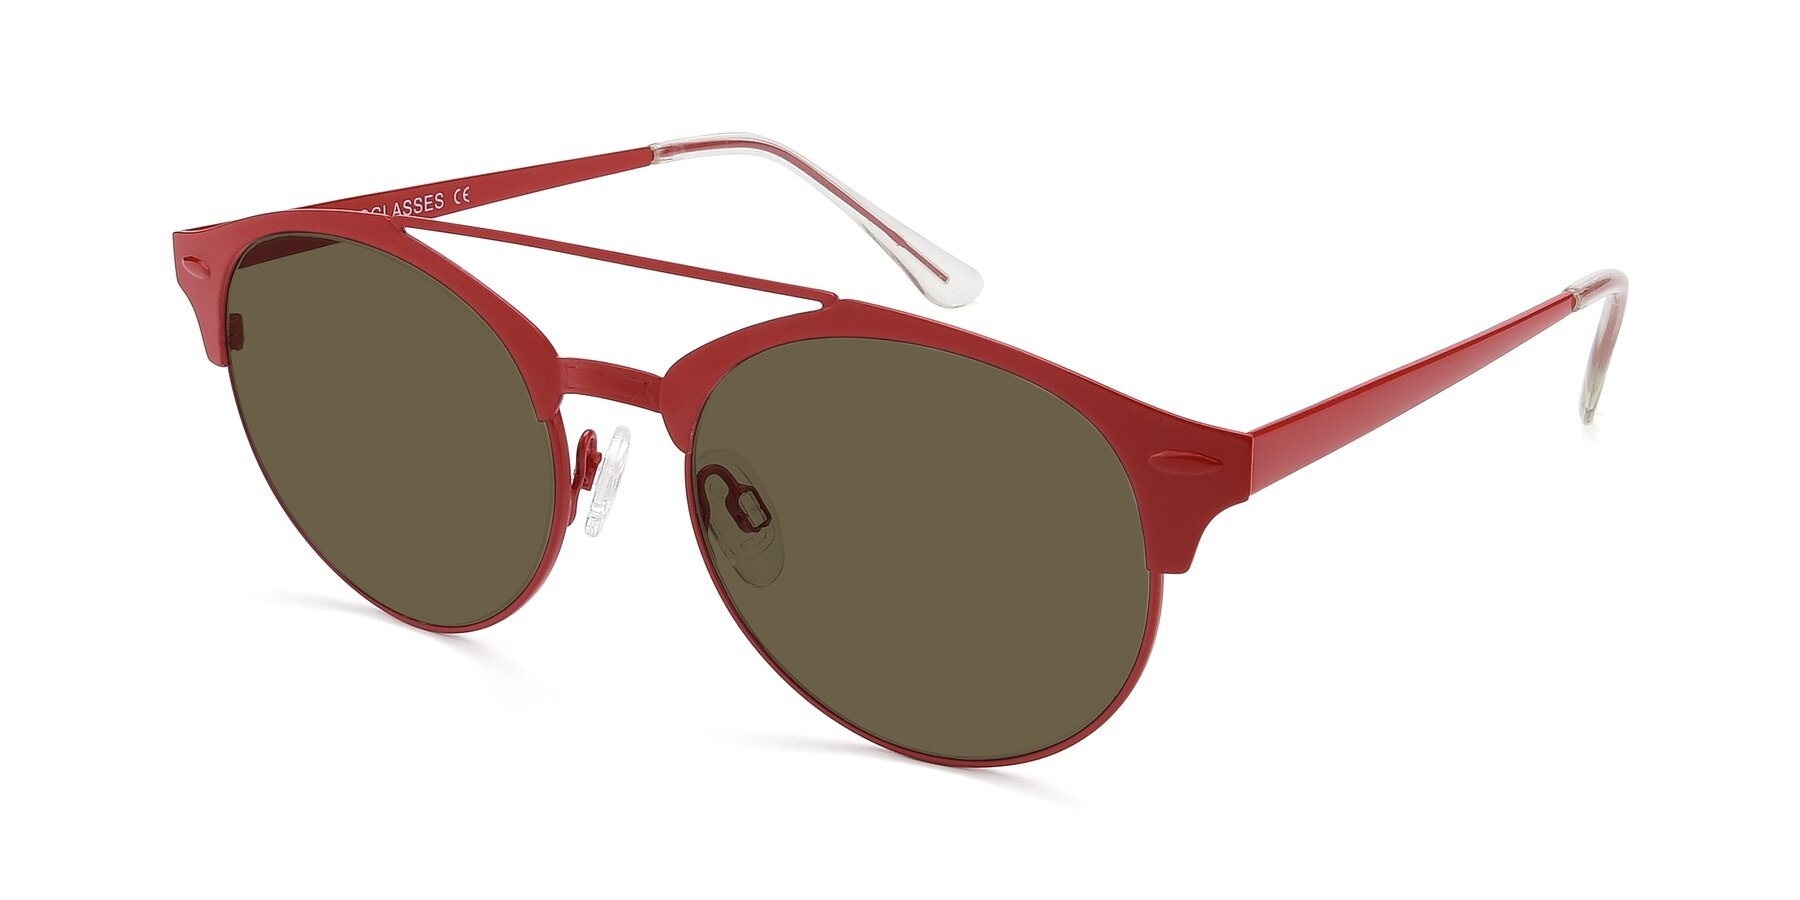 Angle of SSR183 in Red with Brown Polarized Lenses